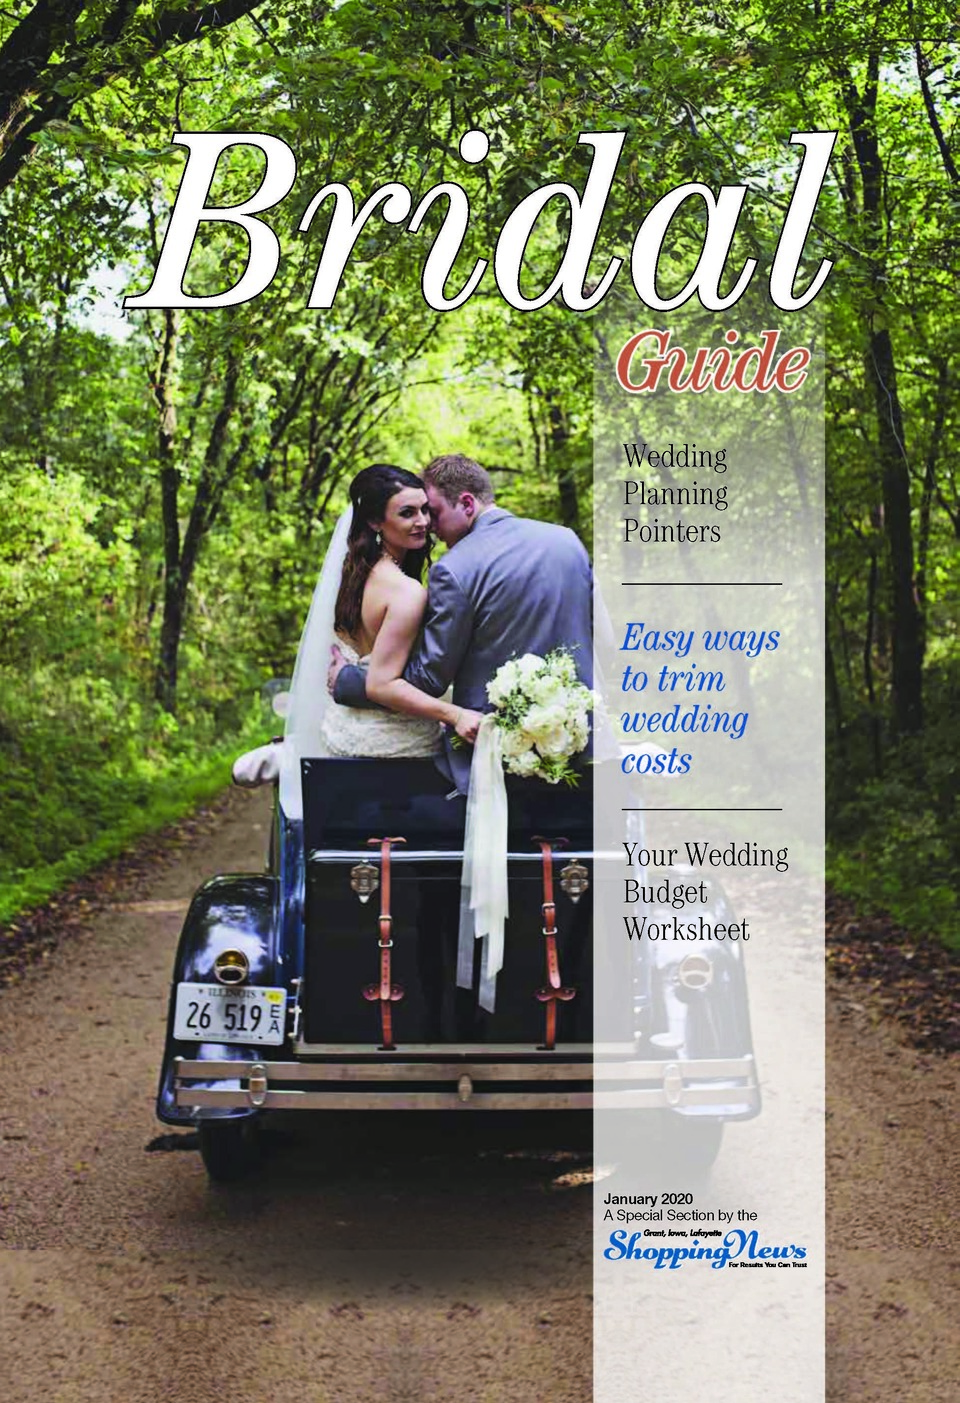 Bridalexpo2020cover